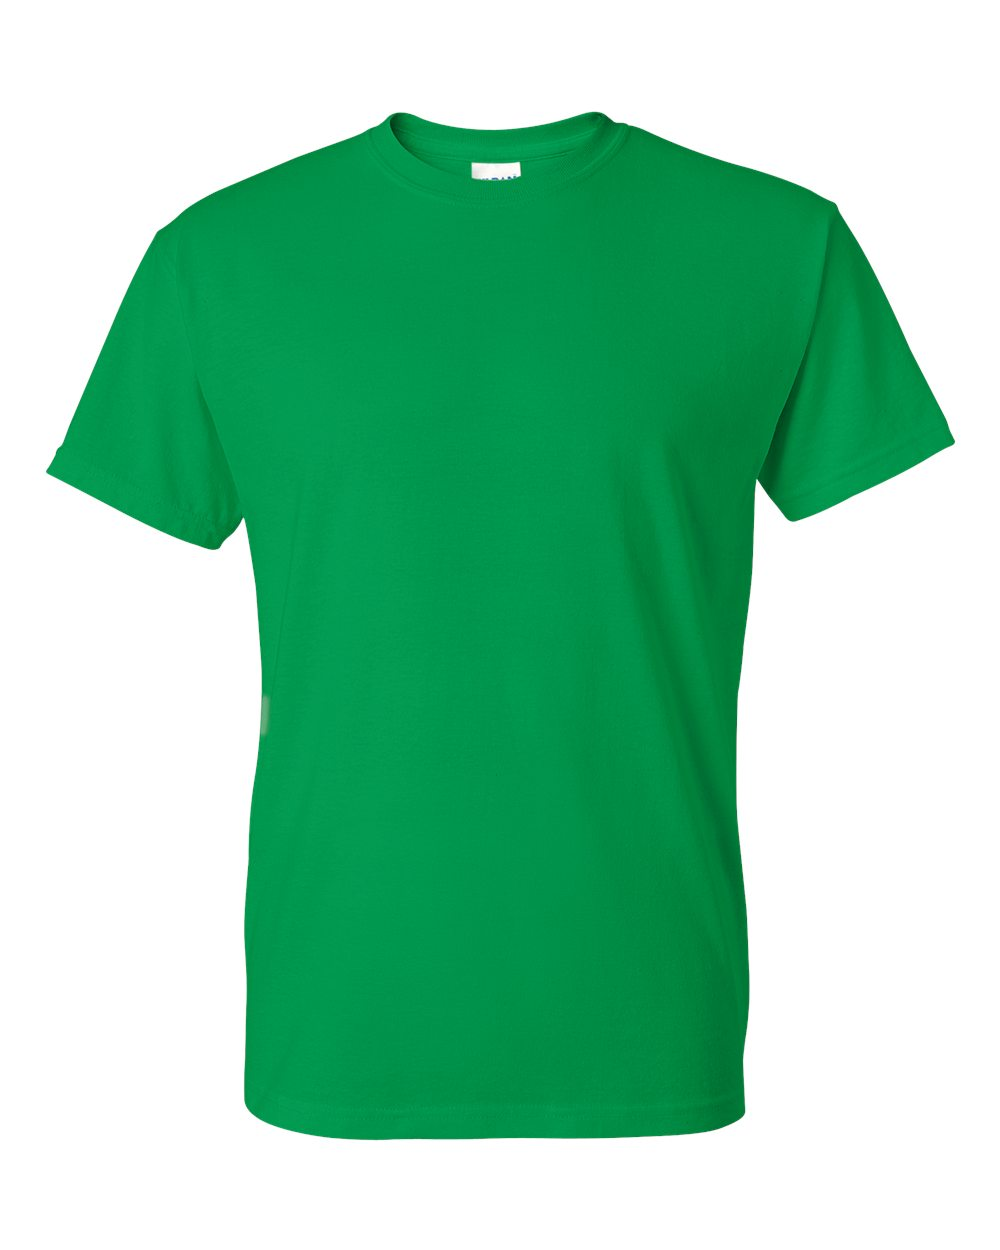 click to view Irish Green